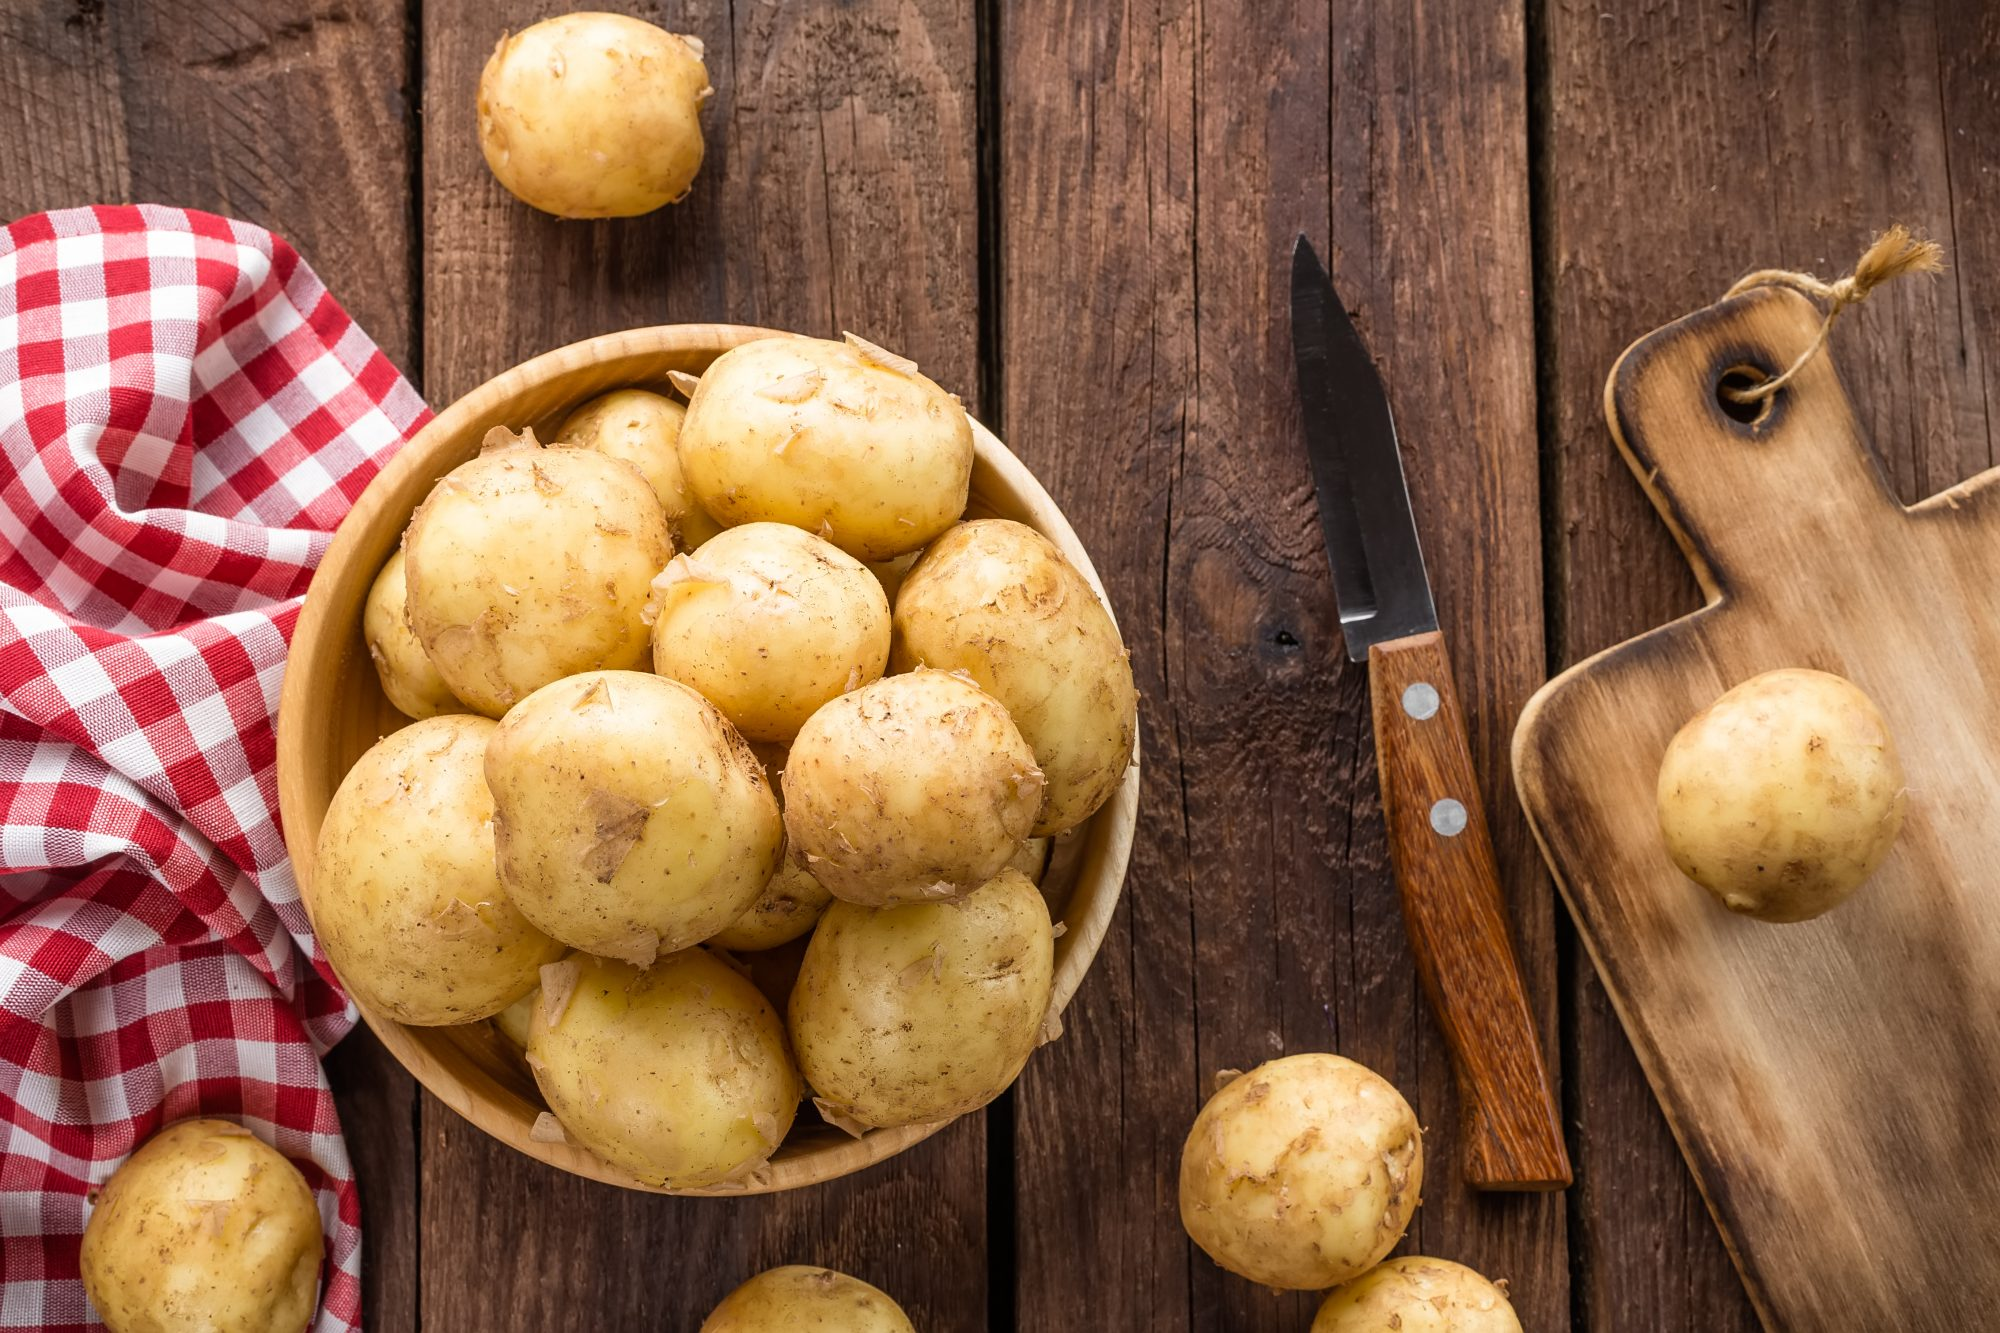 Southern Living Potato Peeling Hack